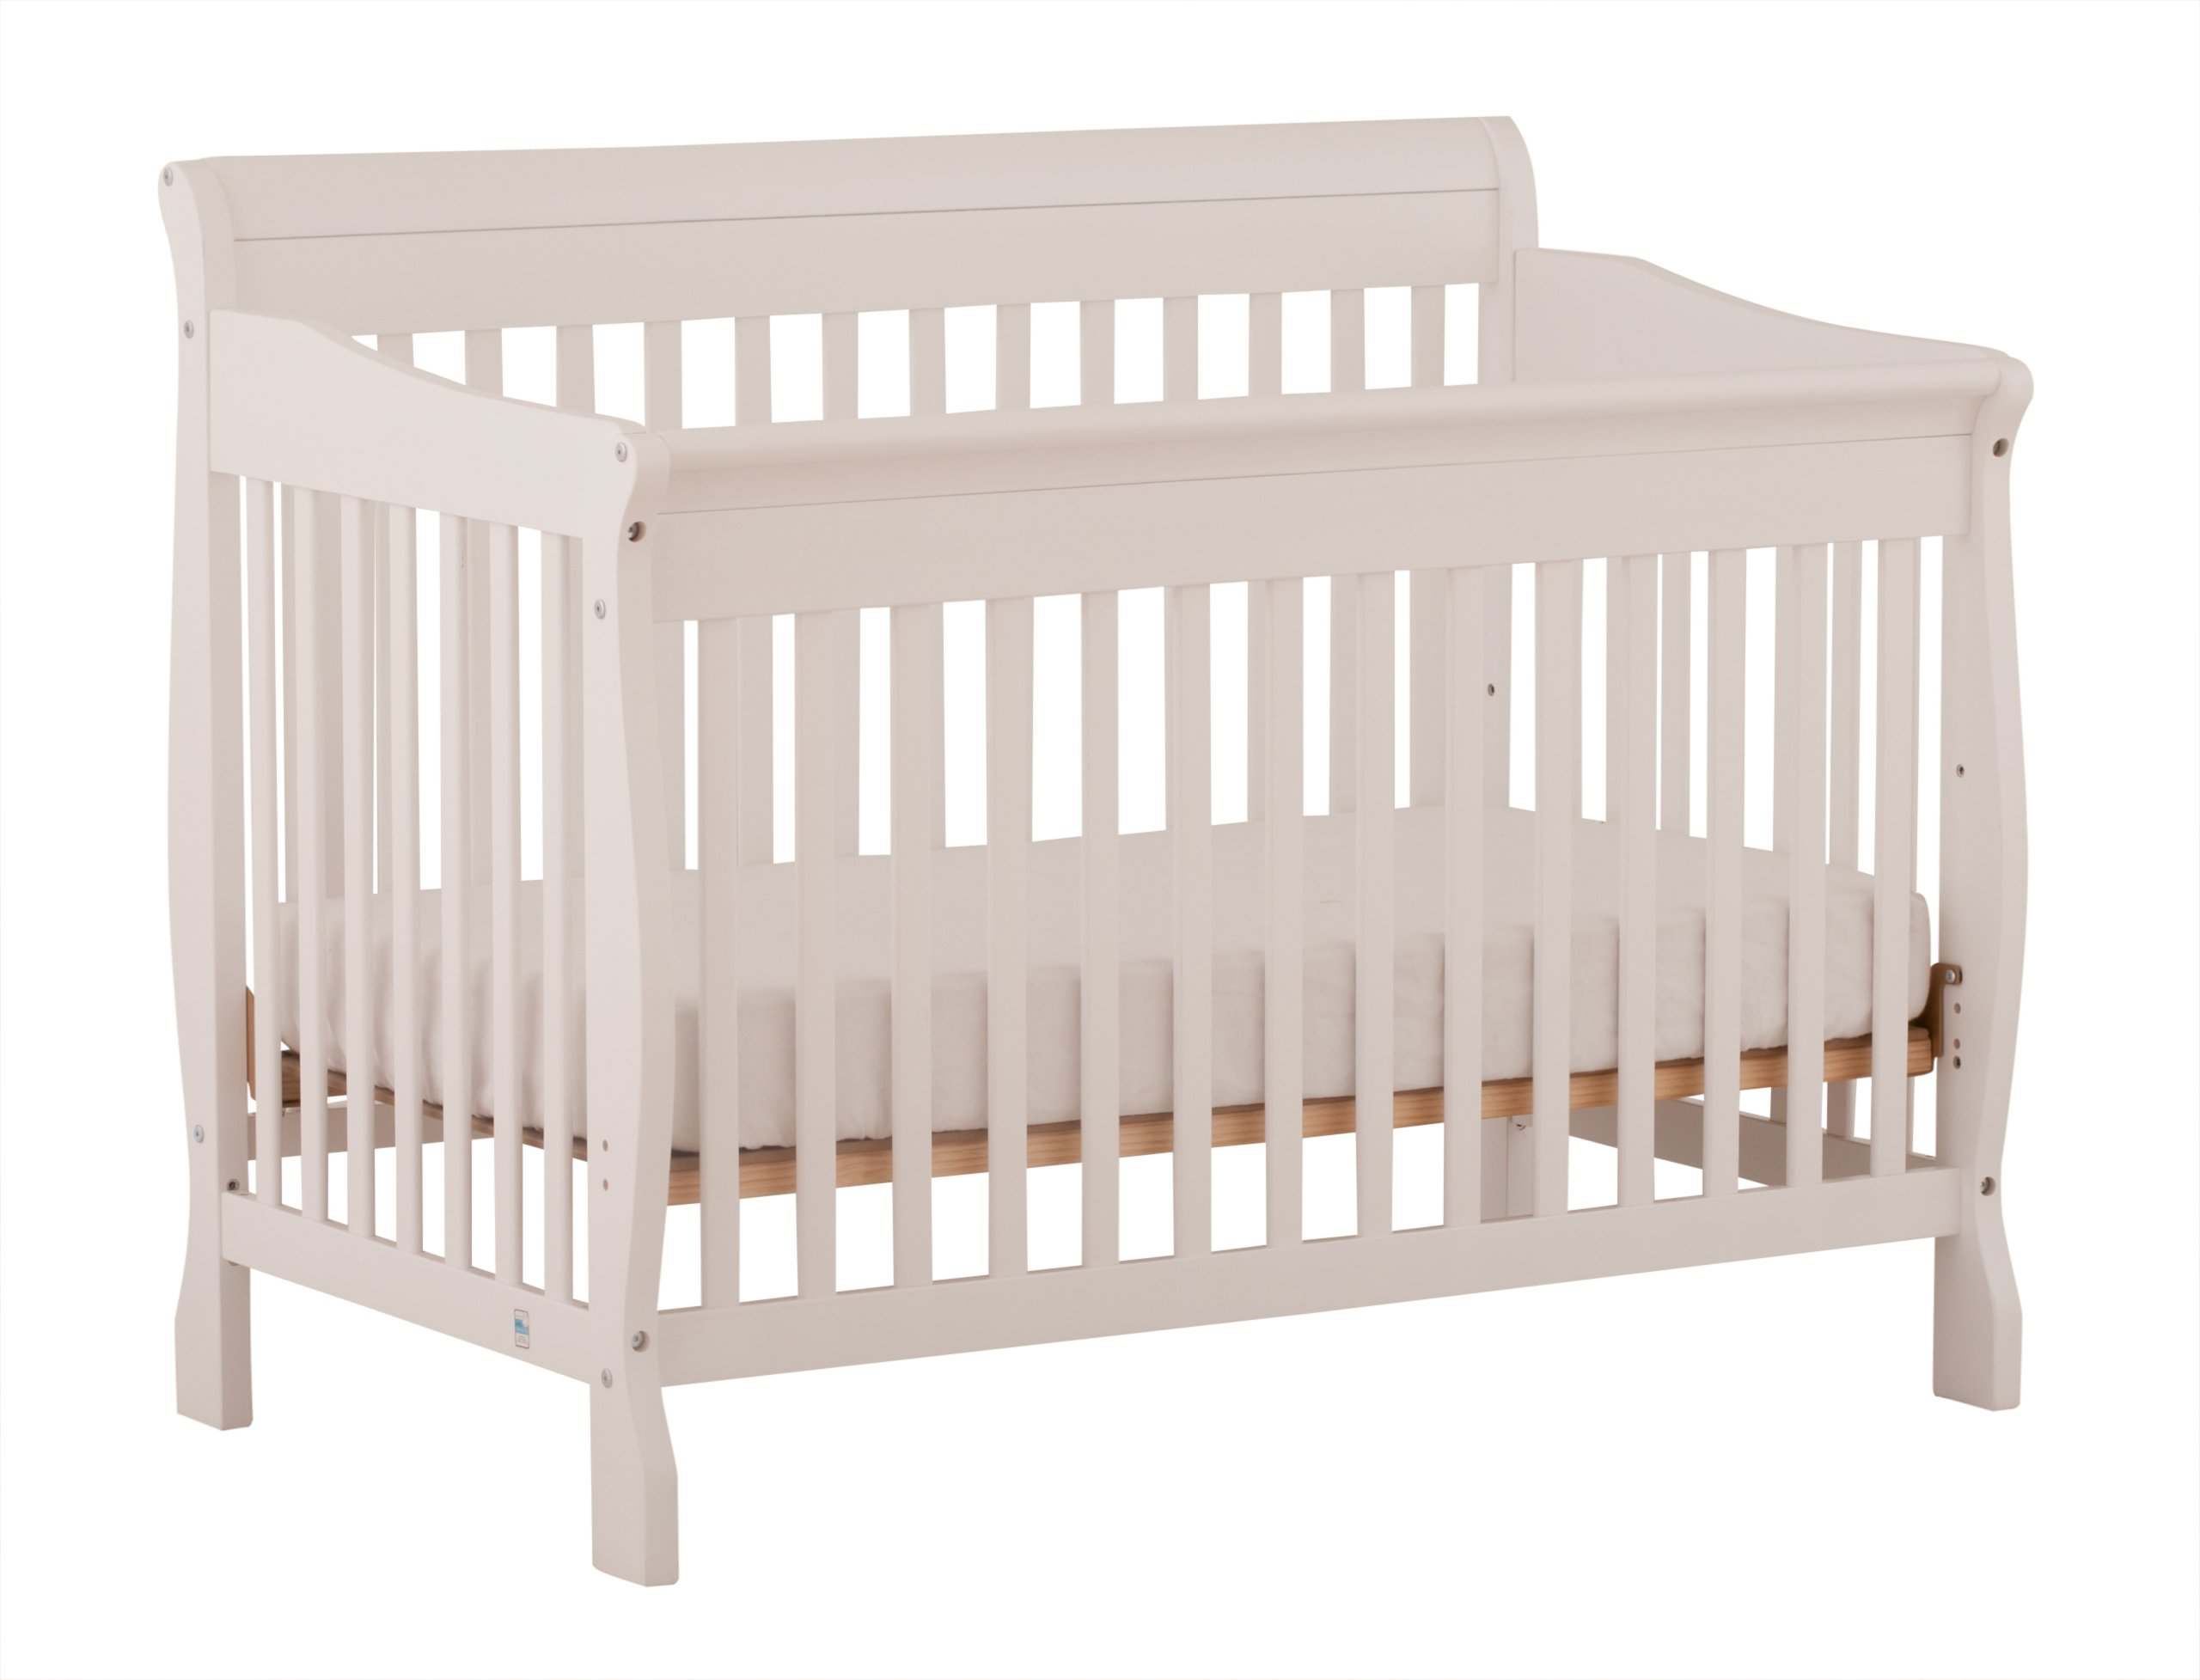 Stork Craft Modena 4 in 1 Fixed Side Convertible Crib, White